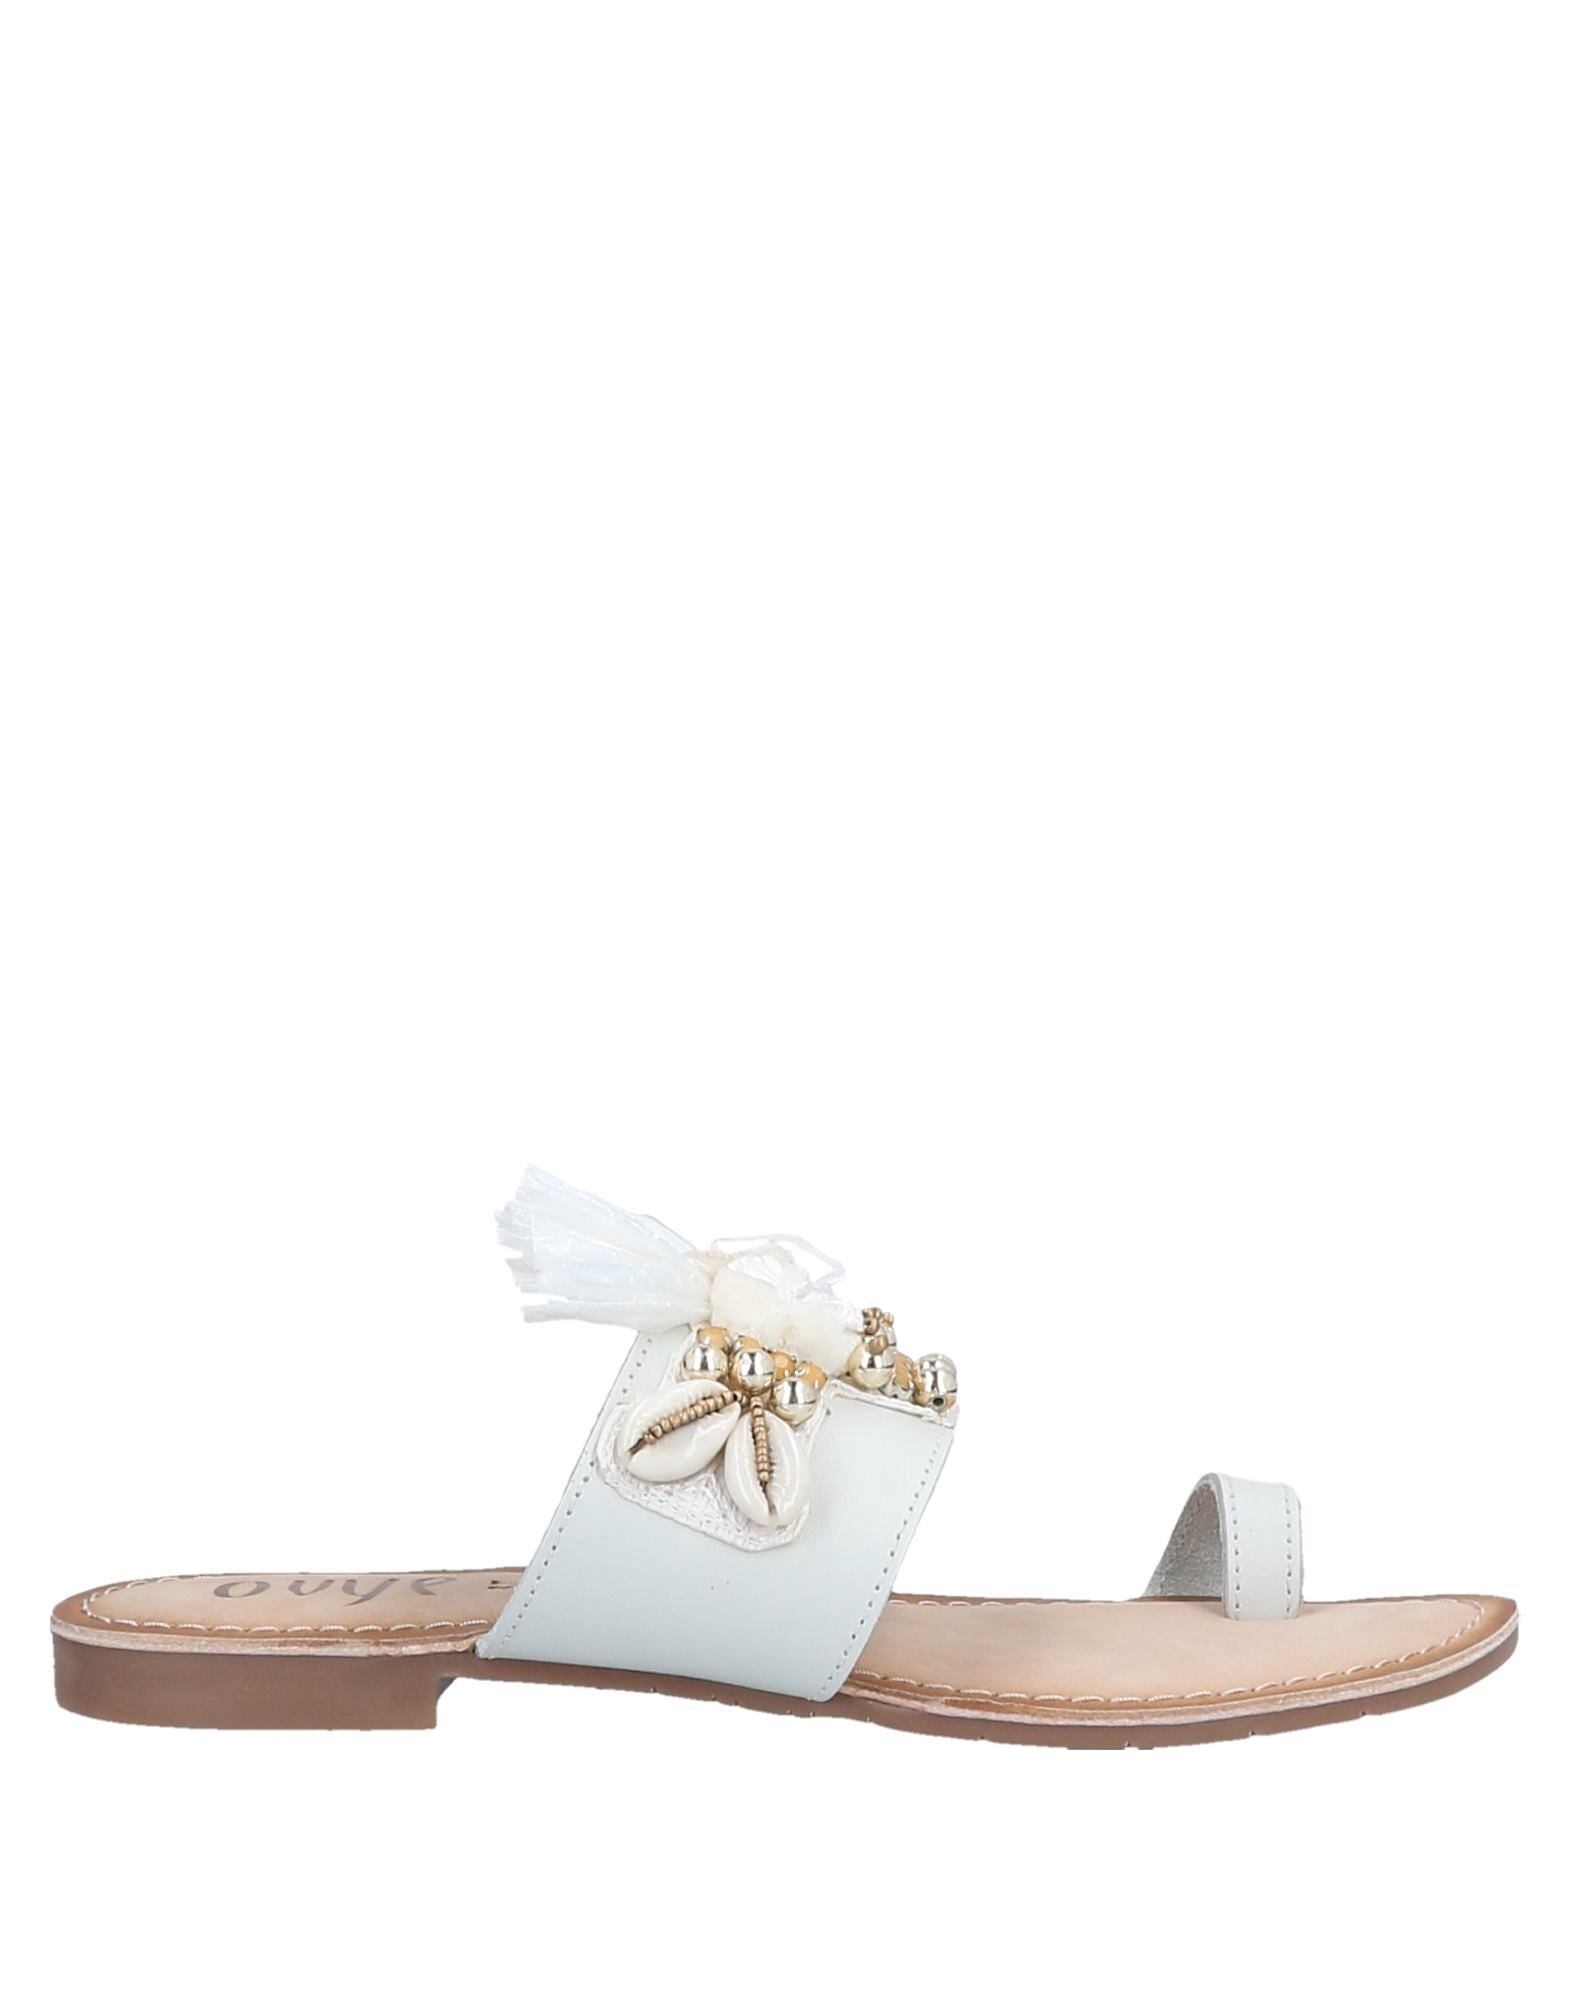 Ovye' By Cristina Lucchi Sandals Sandals Sandals - Women Ovye' By Cristina Lucchi Sandals online on  United Kingdom - 11564913UT 04cc87